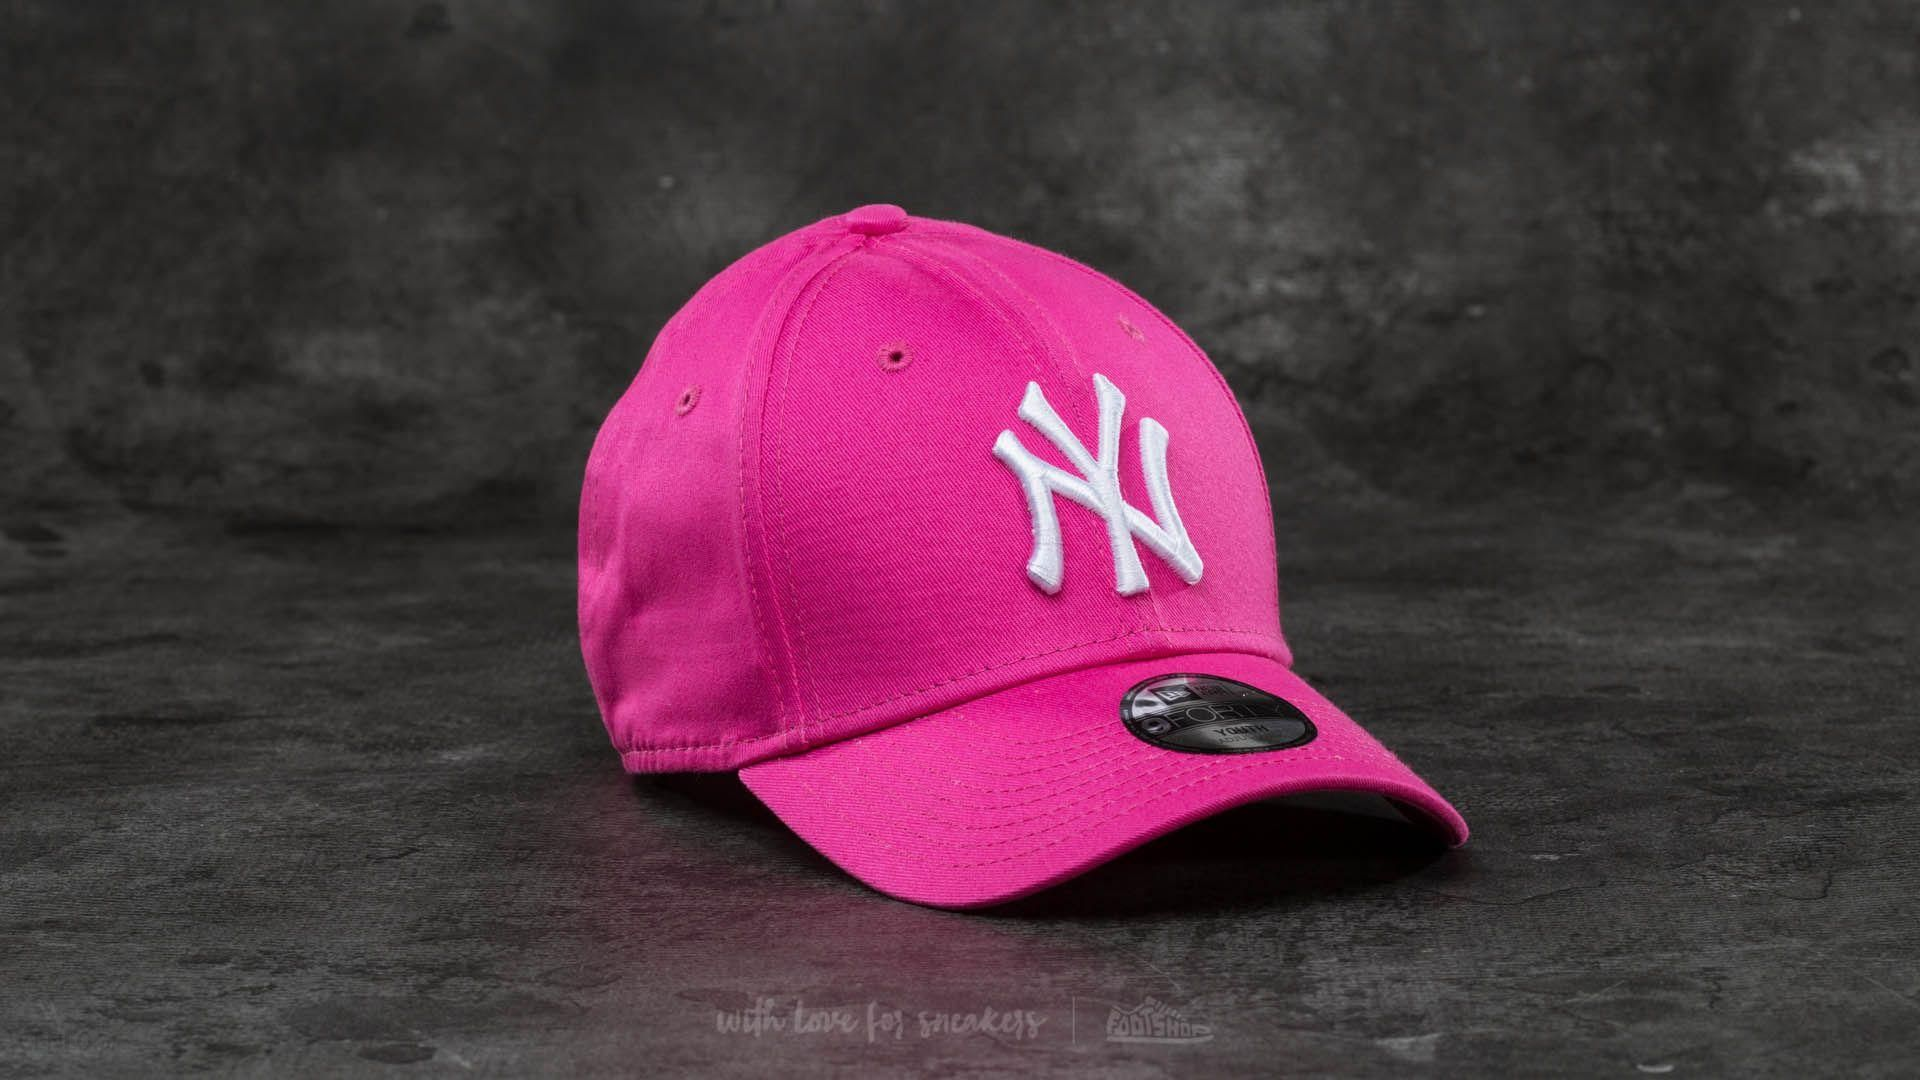 9f609449378 New Era Youth 9Forty Adjustable MLB League New York Yankees Cap Pink  White  - zdjęcie